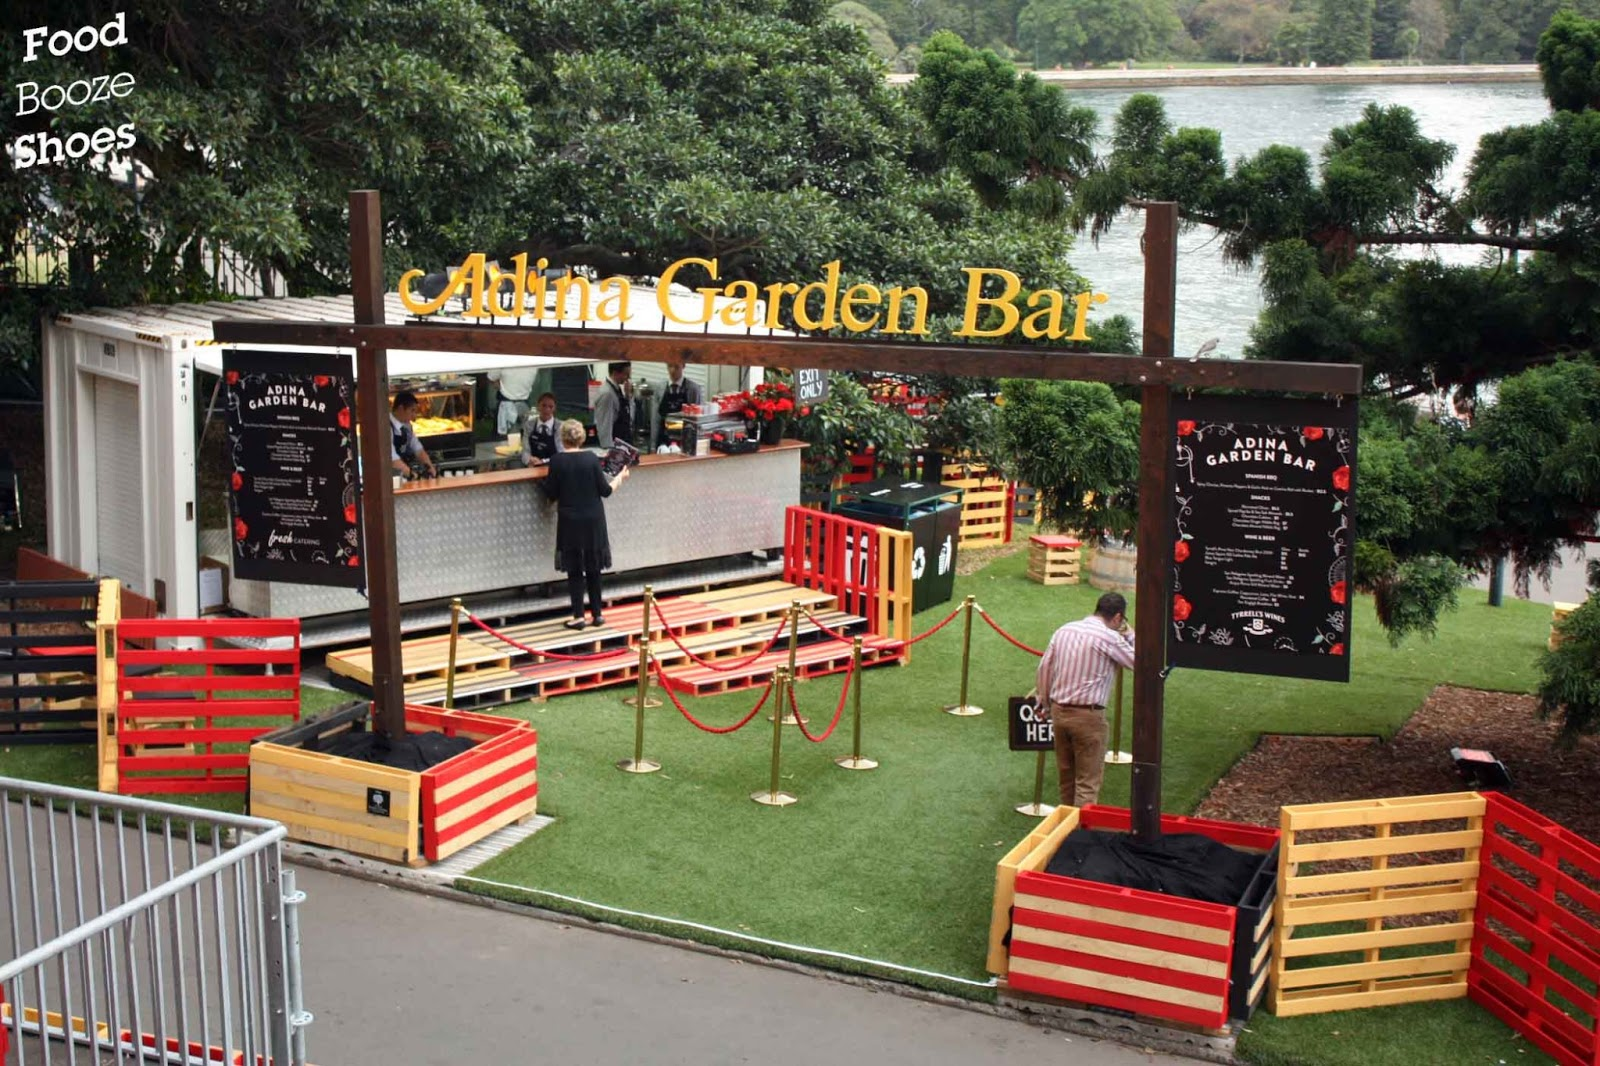 Food booze and shoes opera on sydney harbour carmen a for Food bar garden